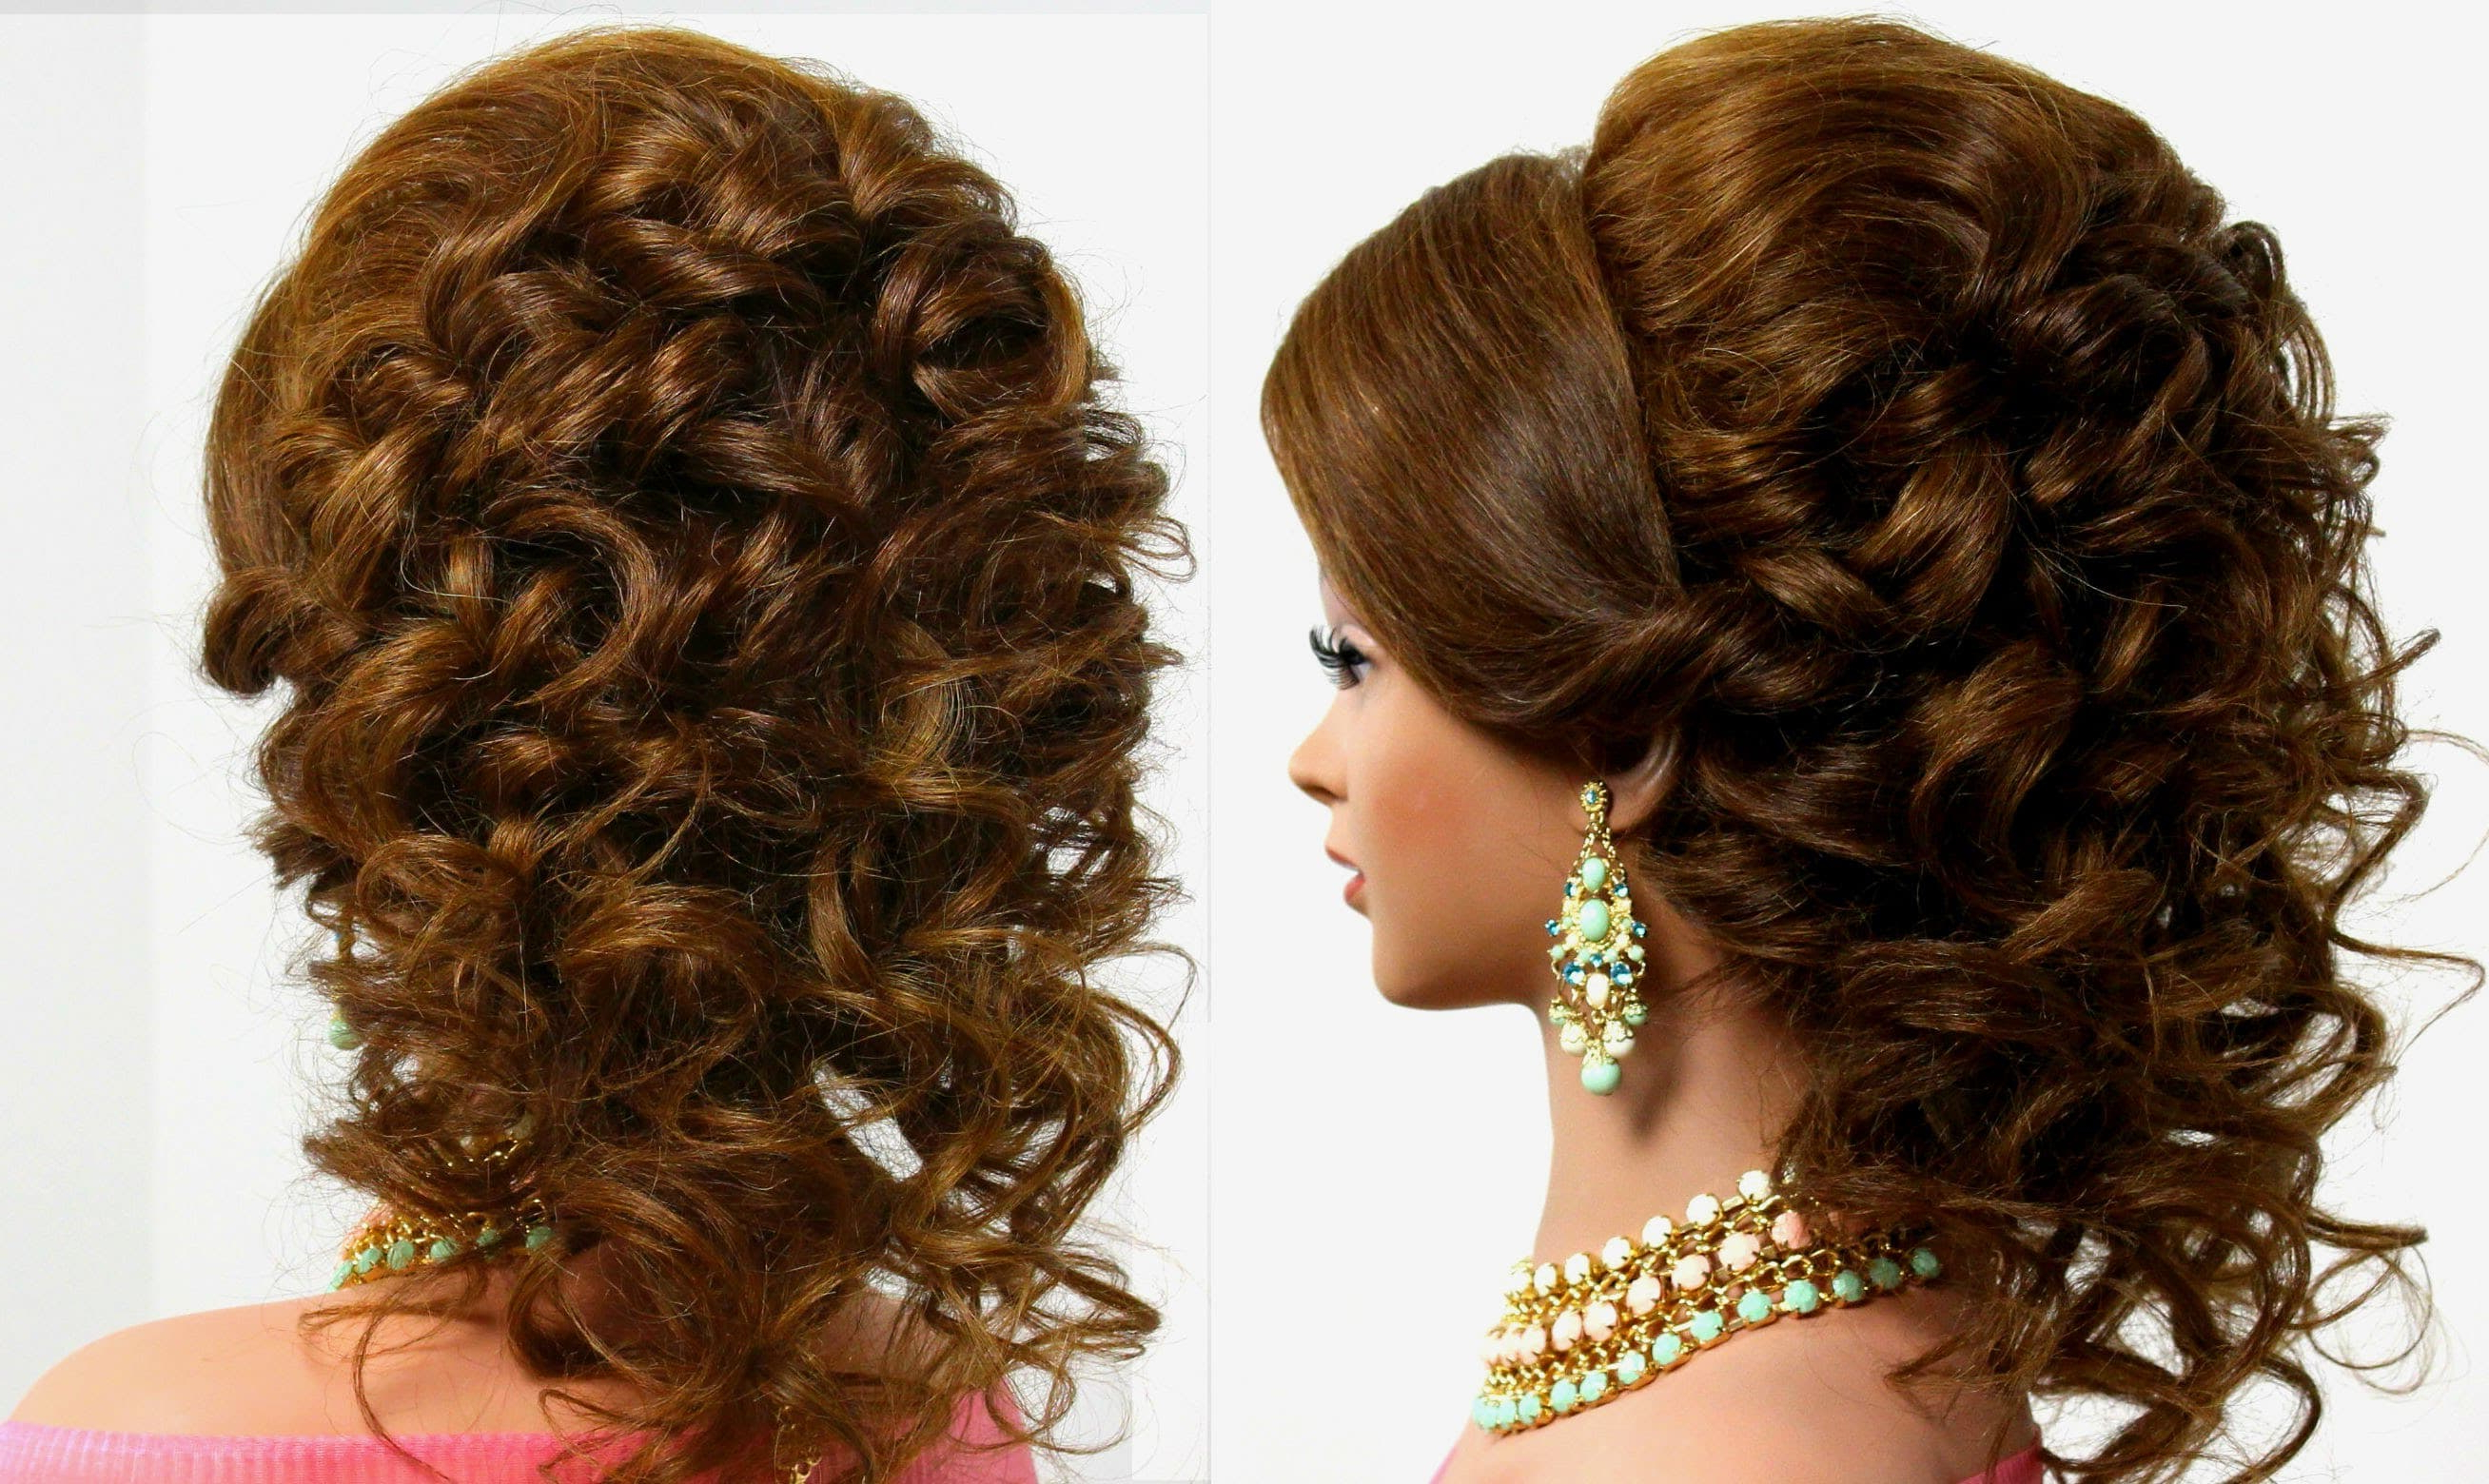 Womens Hairstyles Regarding Most Recent Simple Halfdo Wedding Hairstyles For Short Hair (Gallery 20 of 20)